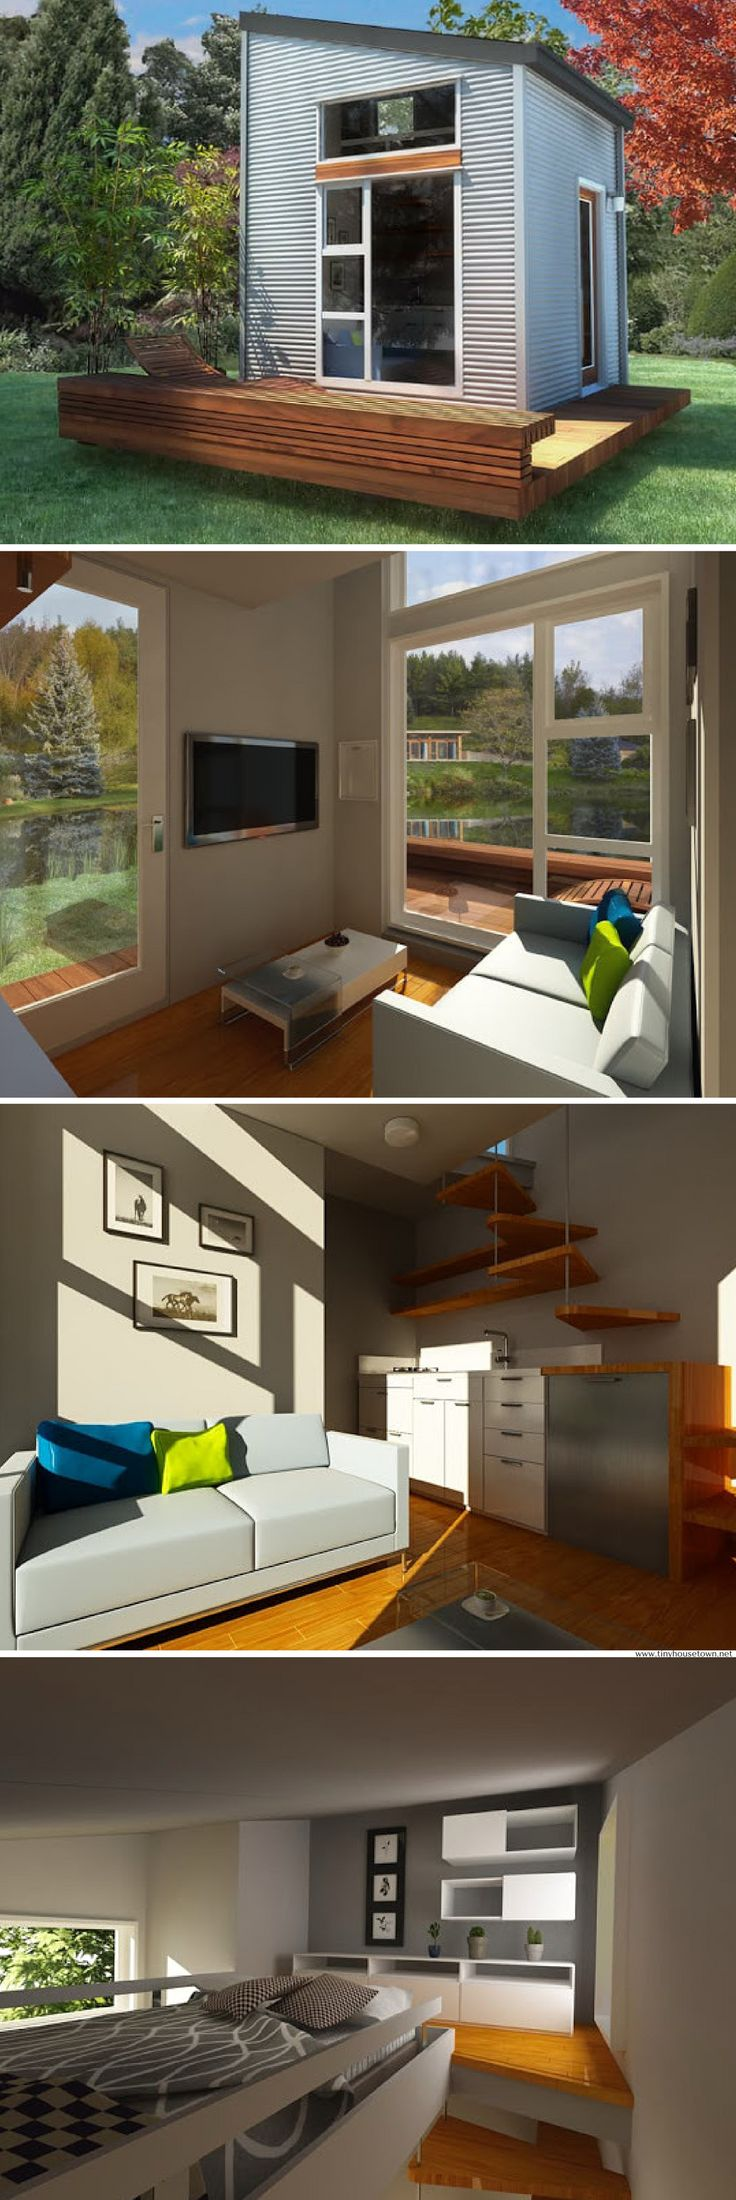 the nomad micro home Last week we showed you an interesting micro home made by camera homes, based out of vancouver here's another player in vancouver's vibrant tiny house scene: nomad micro homes, founded last year by ian kent with capital raised on the indiegogo crowdfunding platform with an anti-consumerism.